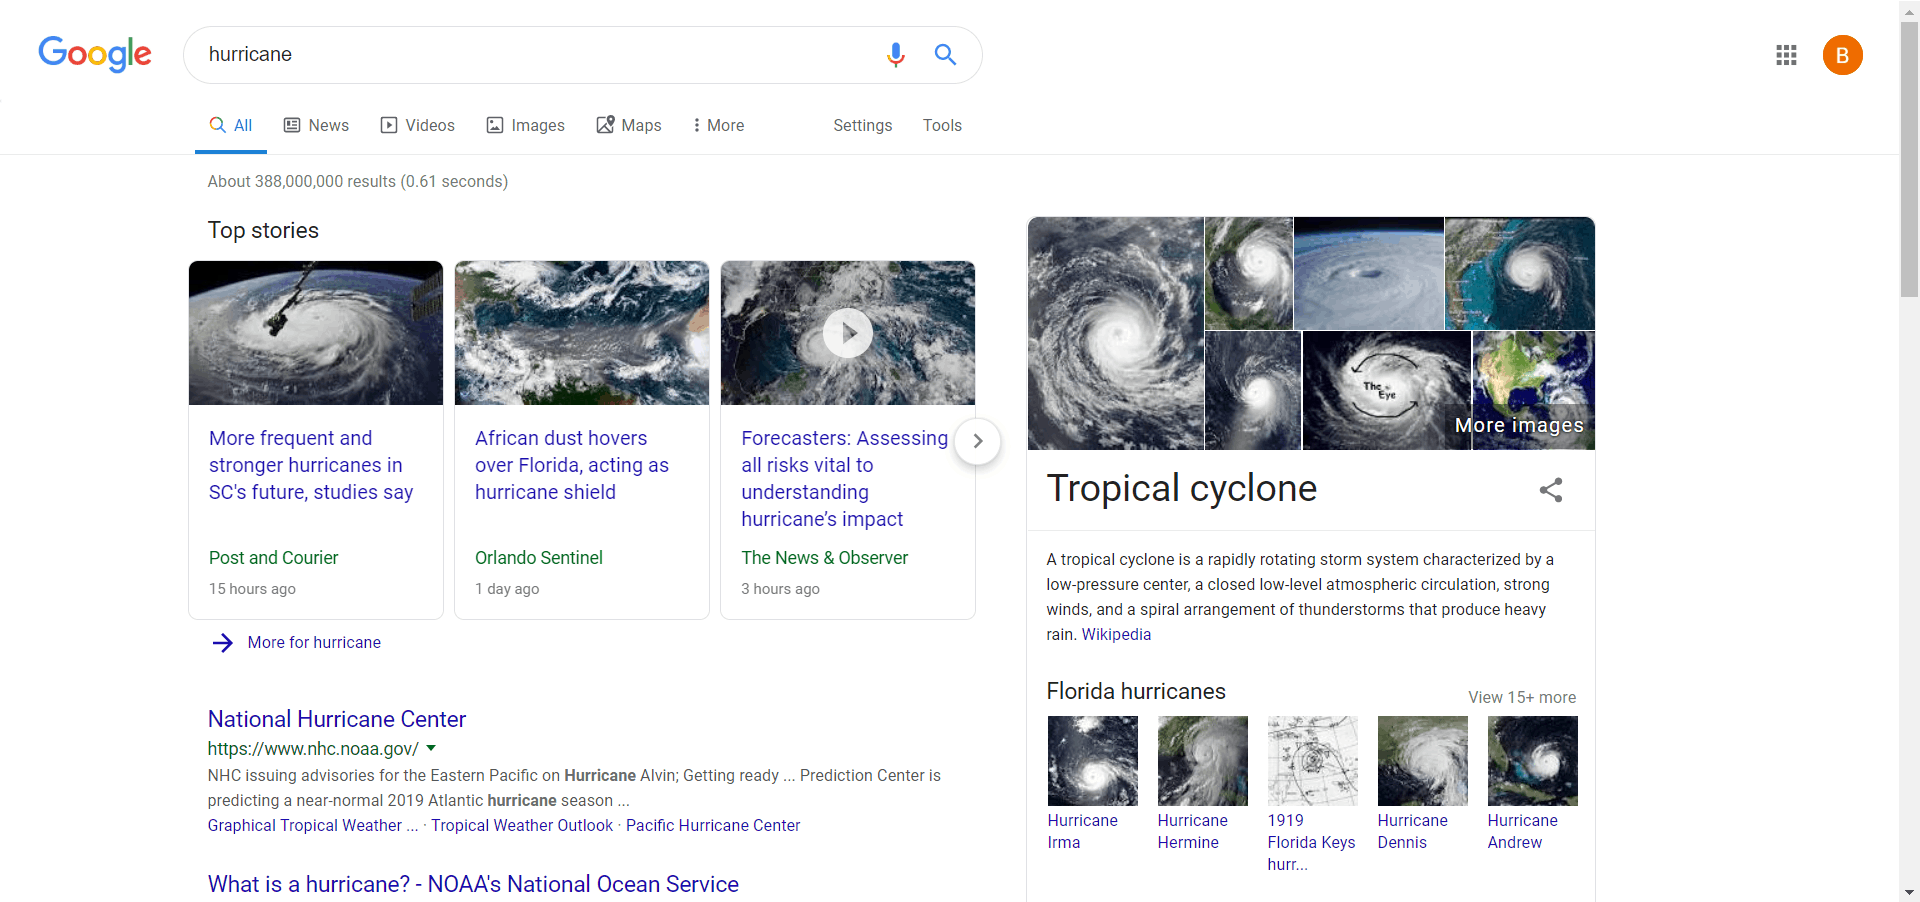 google hurricane results